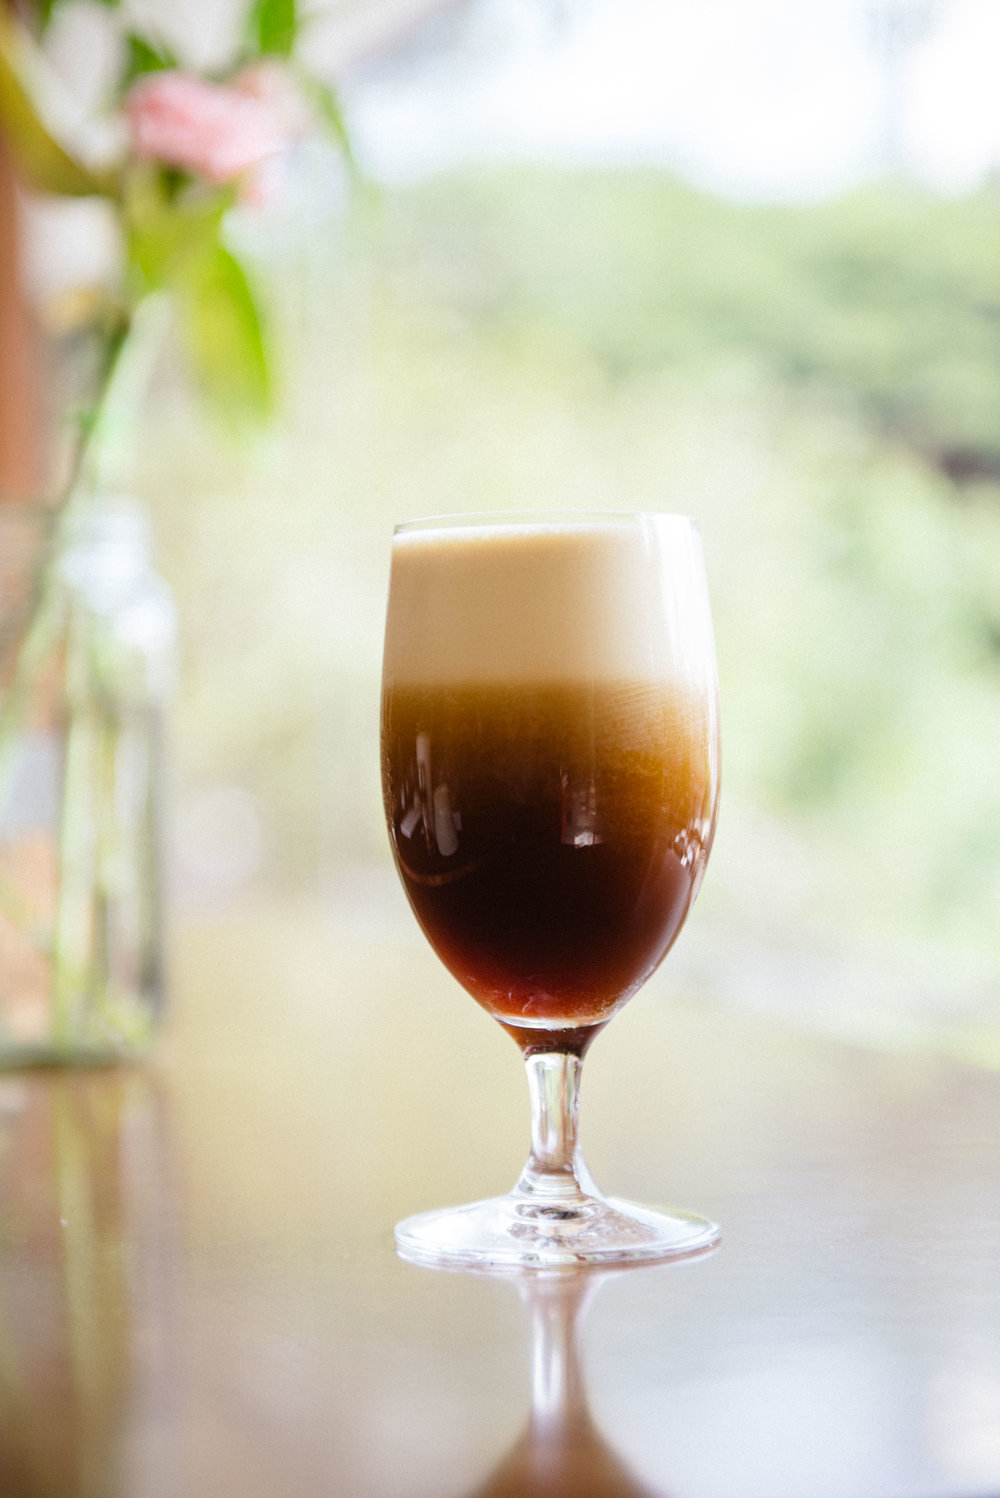 Nitro-infused cold brew at The Flying Squirrel Micro-Roastery & Cafe